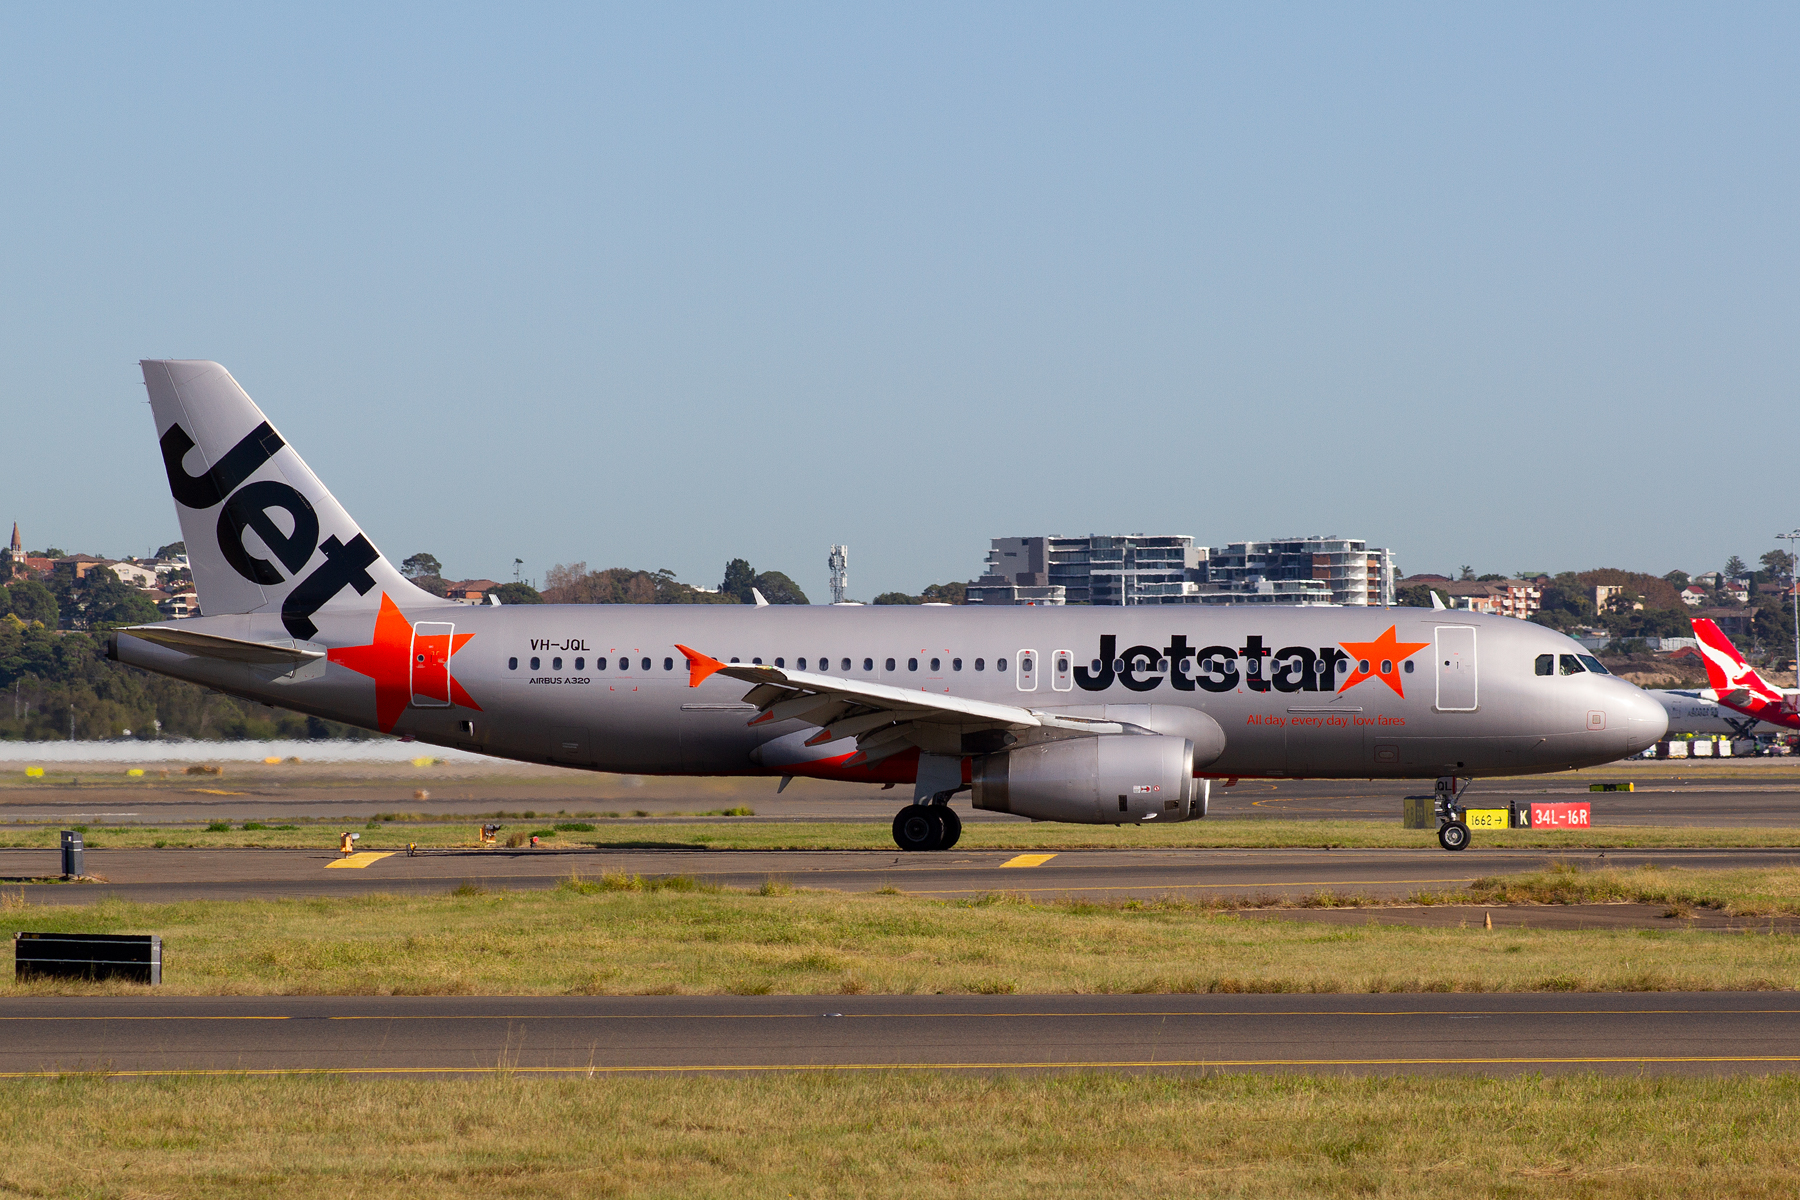 Jetstar Airways Airbus A320-200 VH-JQL at Kingsford Smith